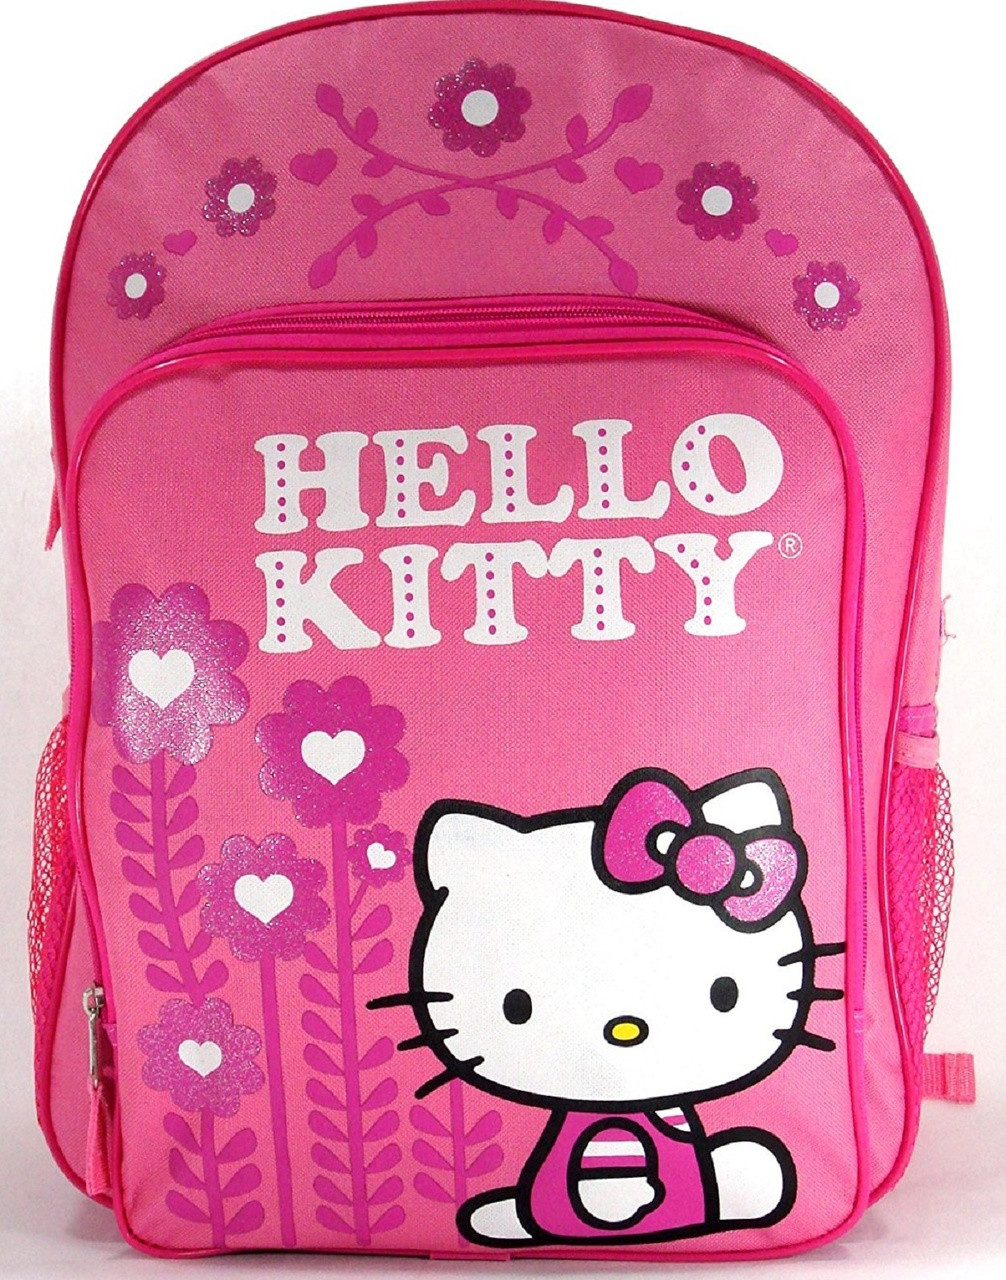 83d4b57c2531 Backpack - Hello Kitty - Large 16 Inch - Flowers